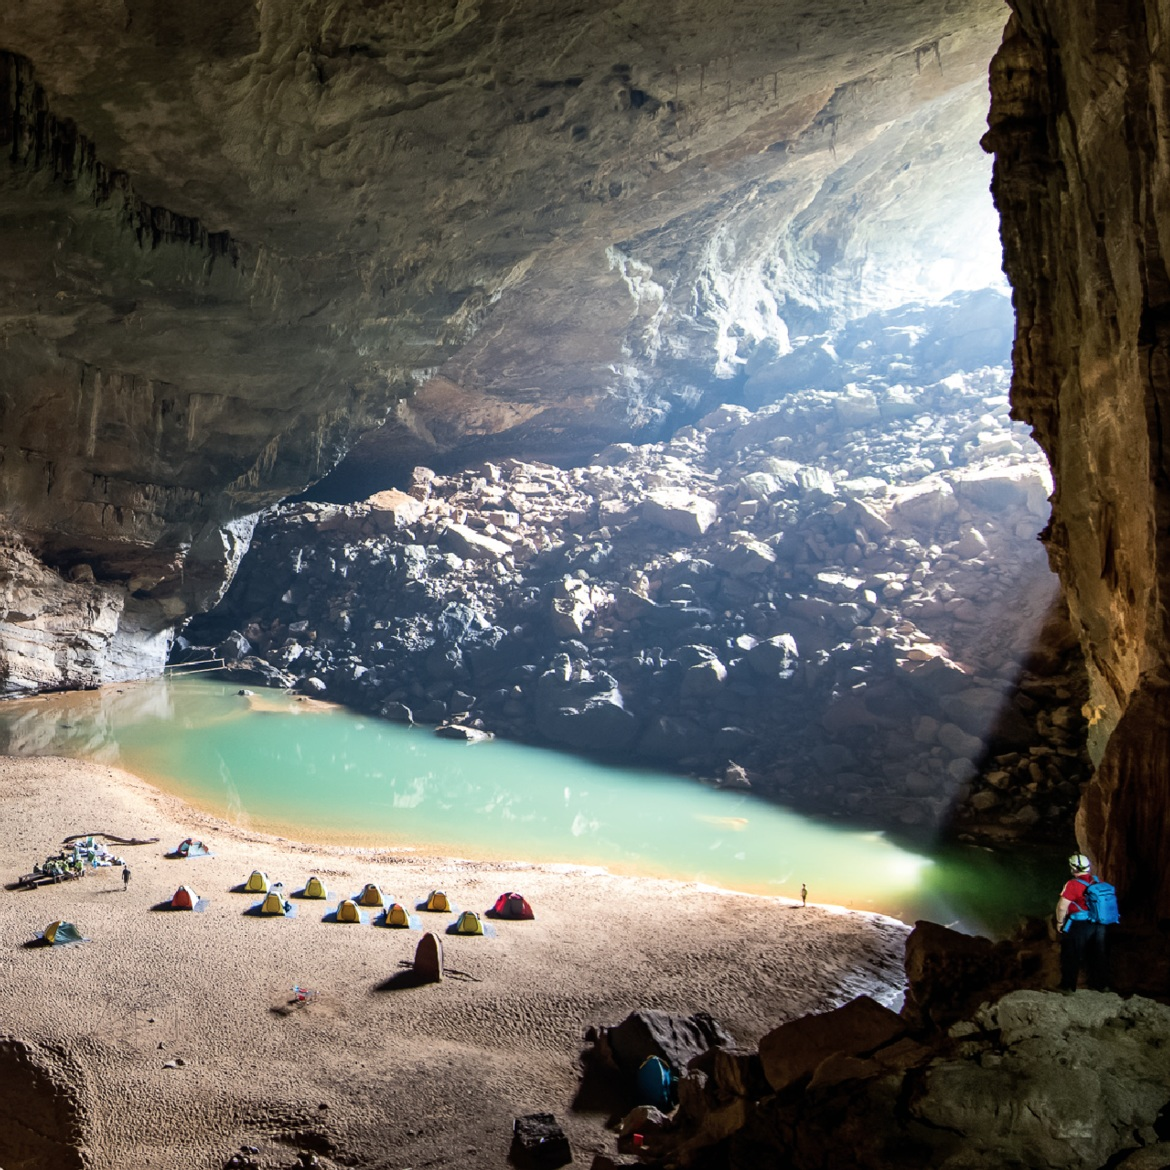 Camp in the world's third largest cave -